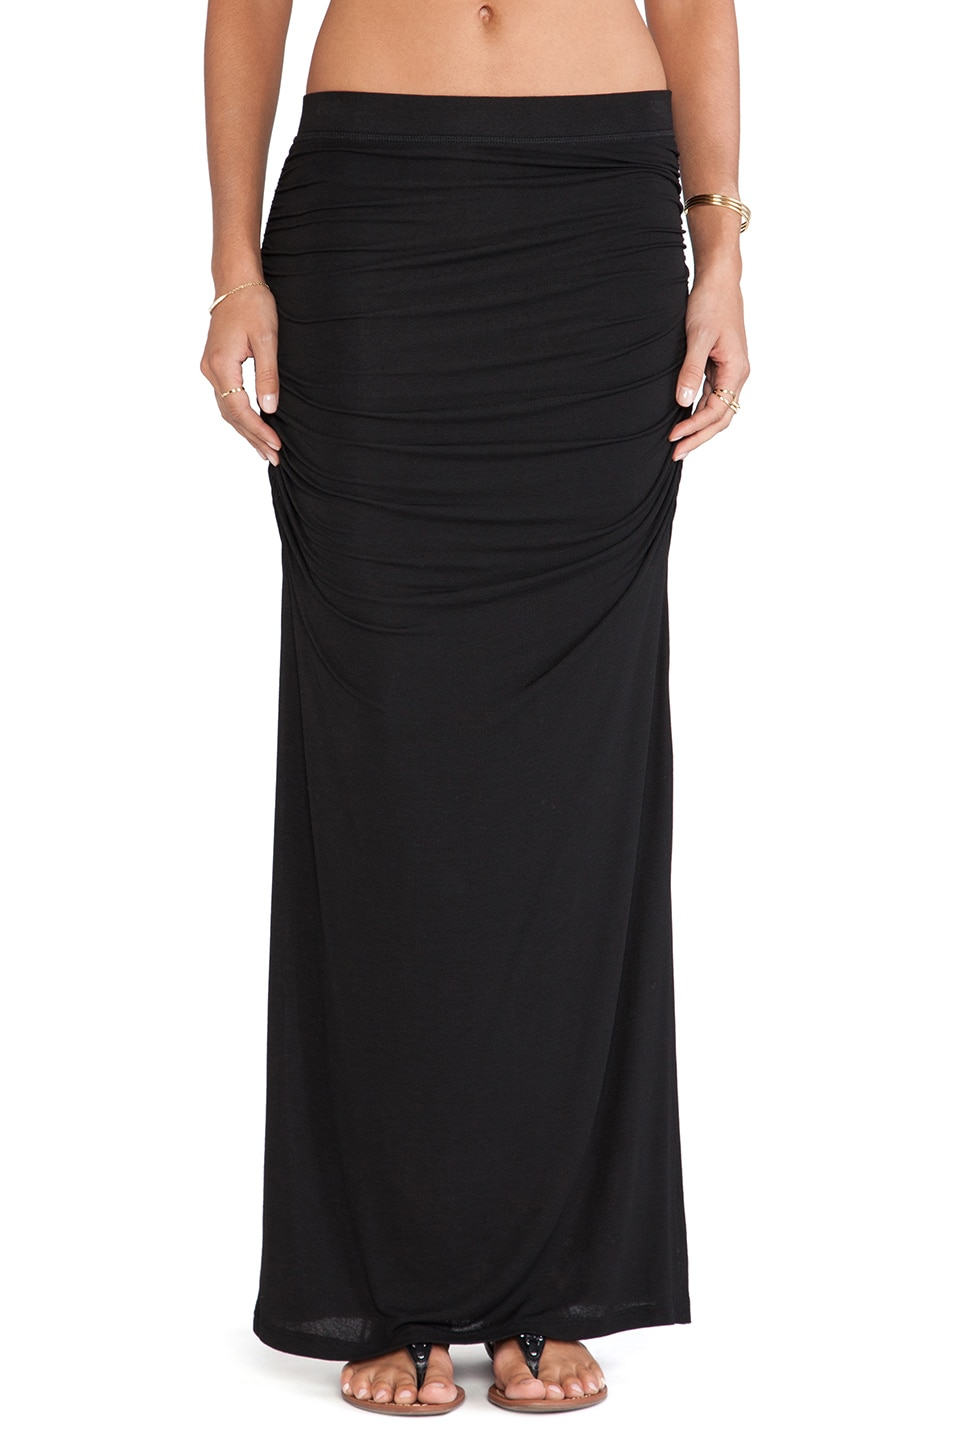 Ella Moss Icon skirt in Black